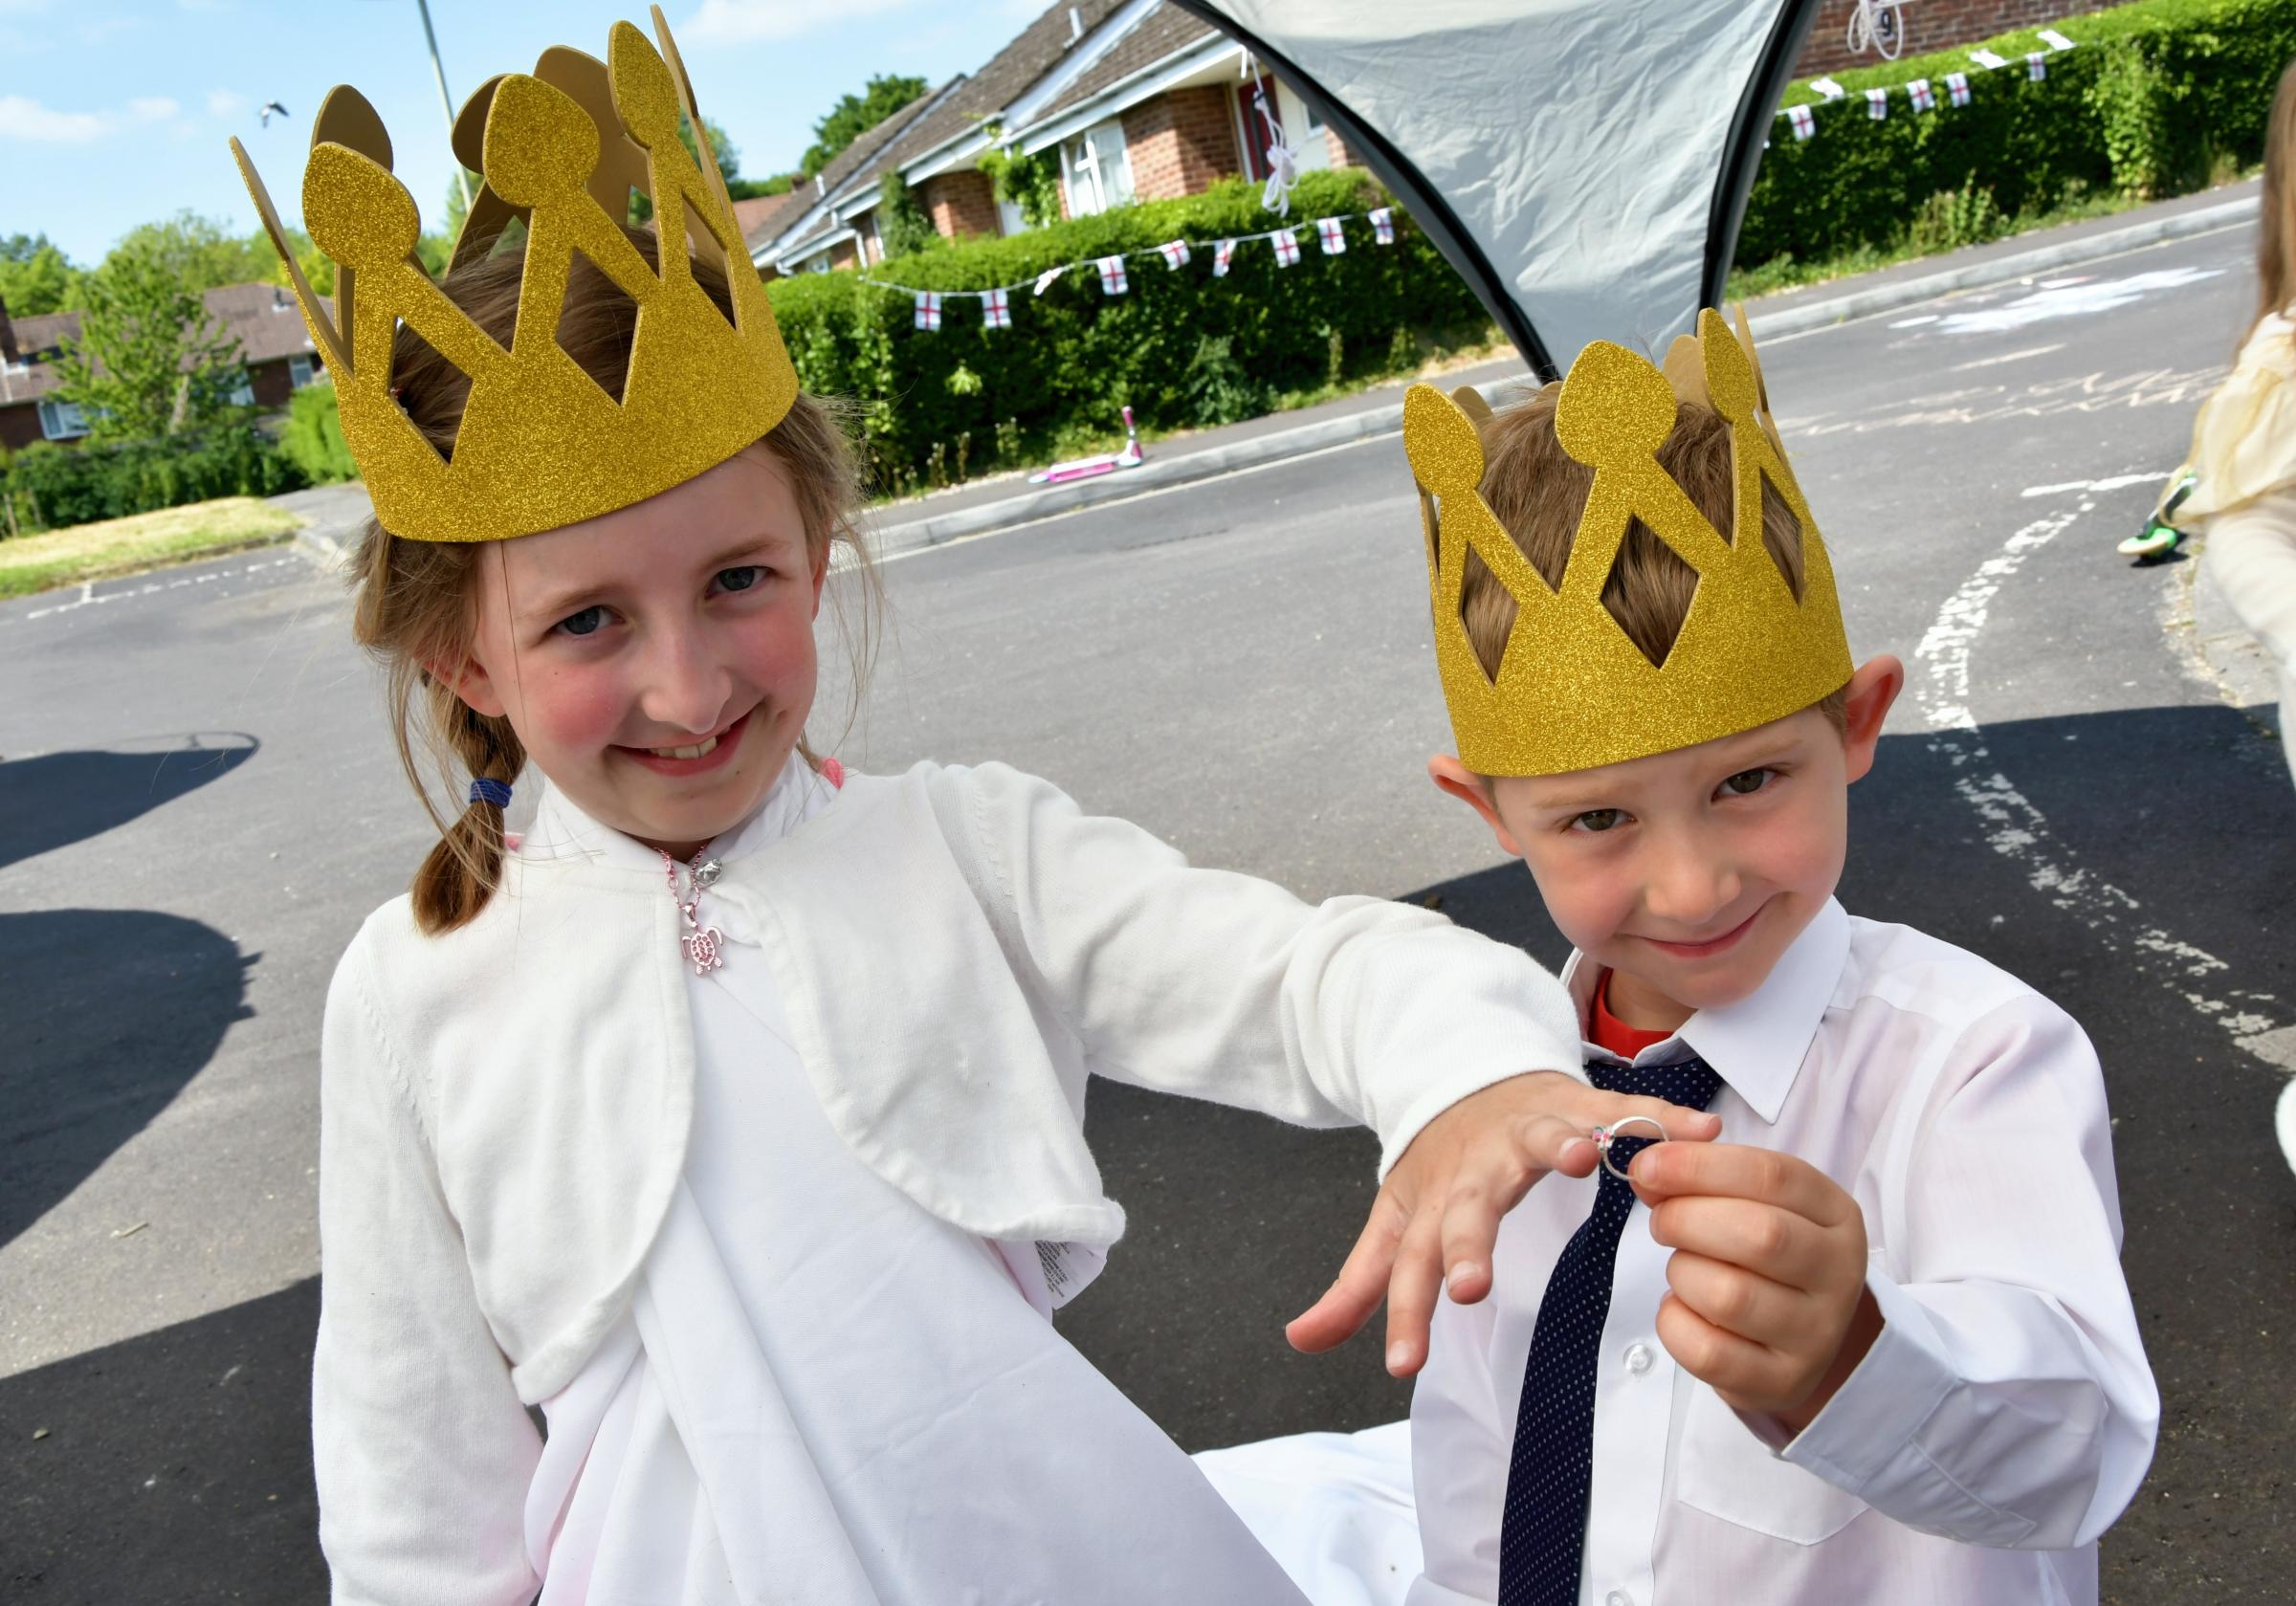 Royal Wedding.